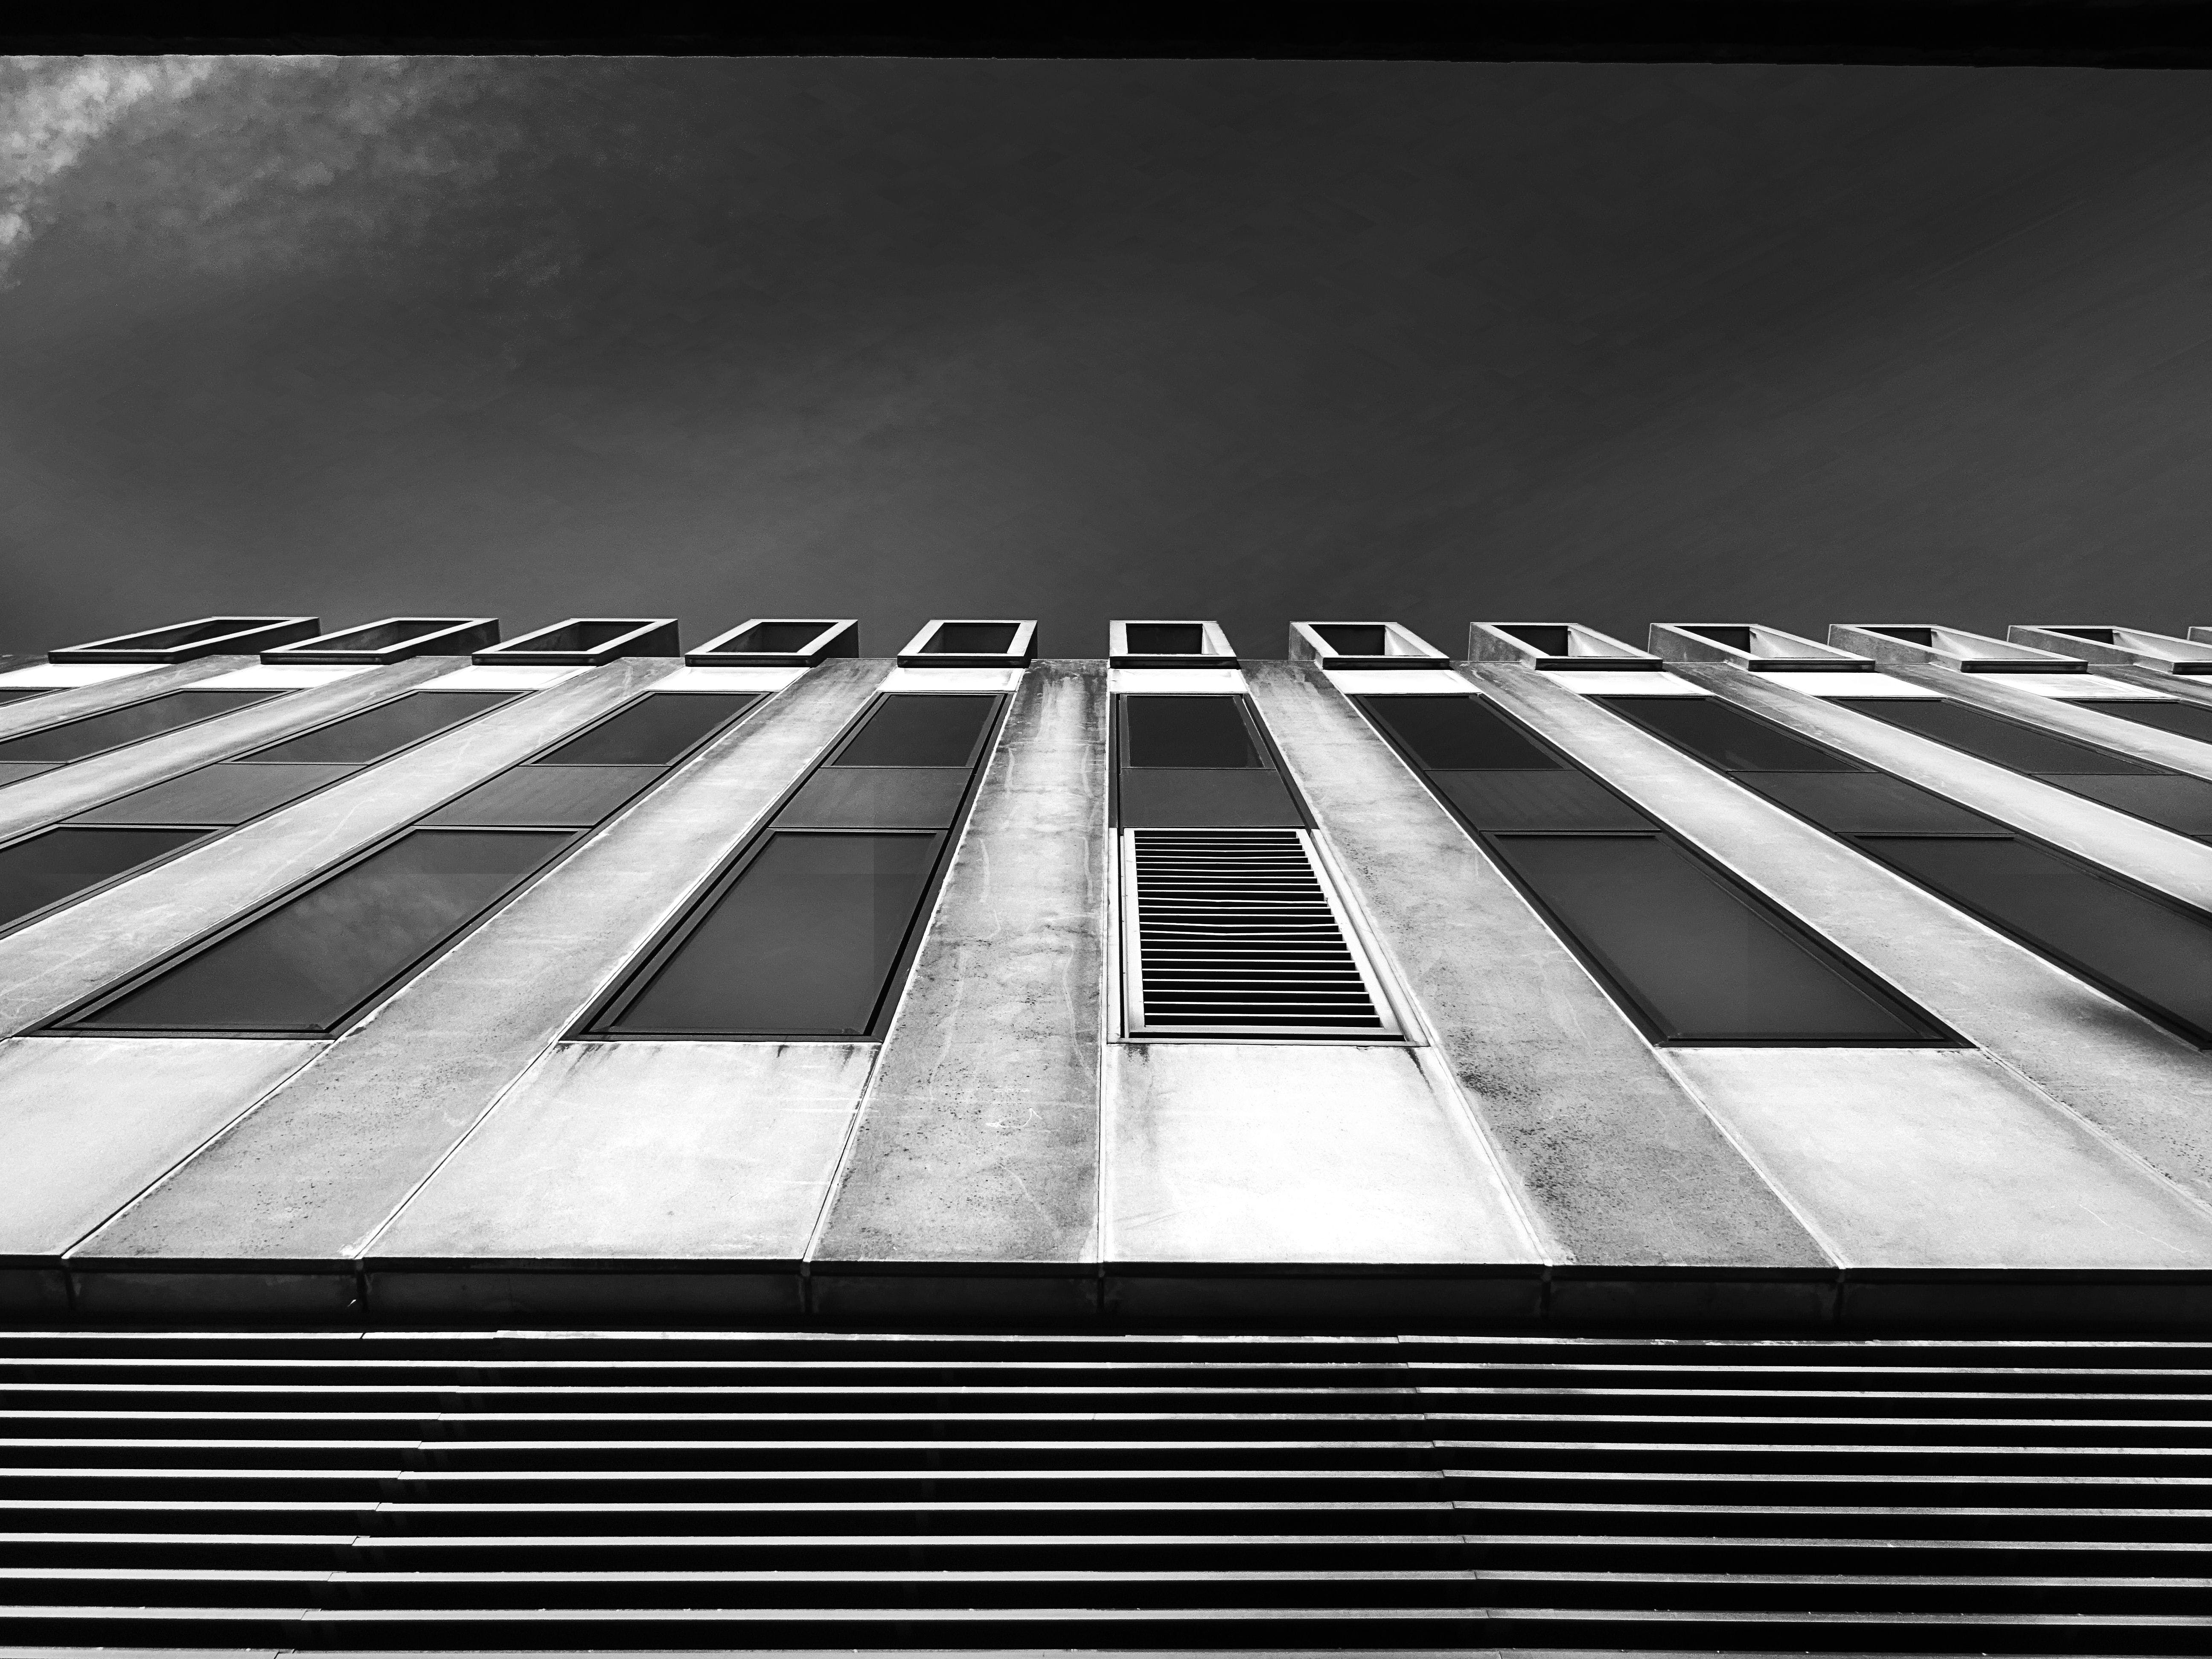 architectural design, black-and-white, building